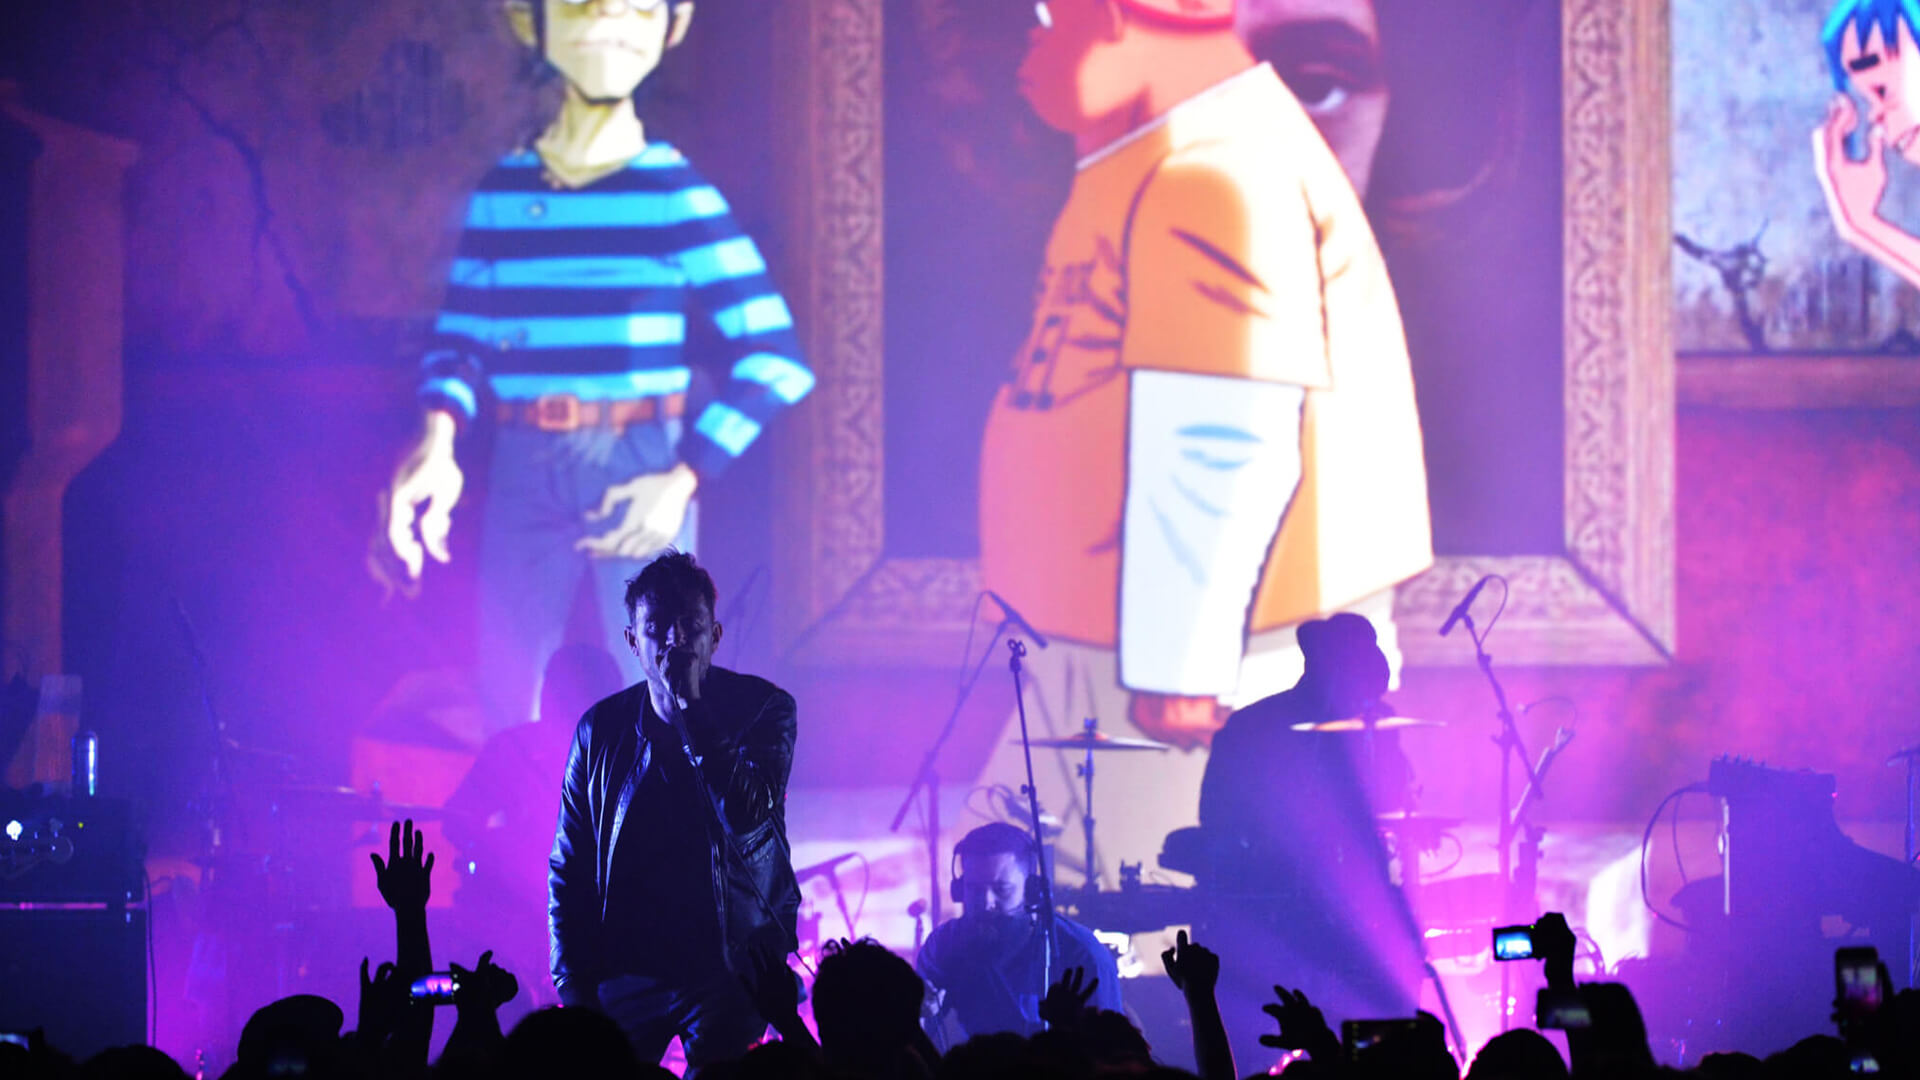 MA_Gorillaz_Humanz_011-PHOTO-CREDIT-MARK-ALLAN